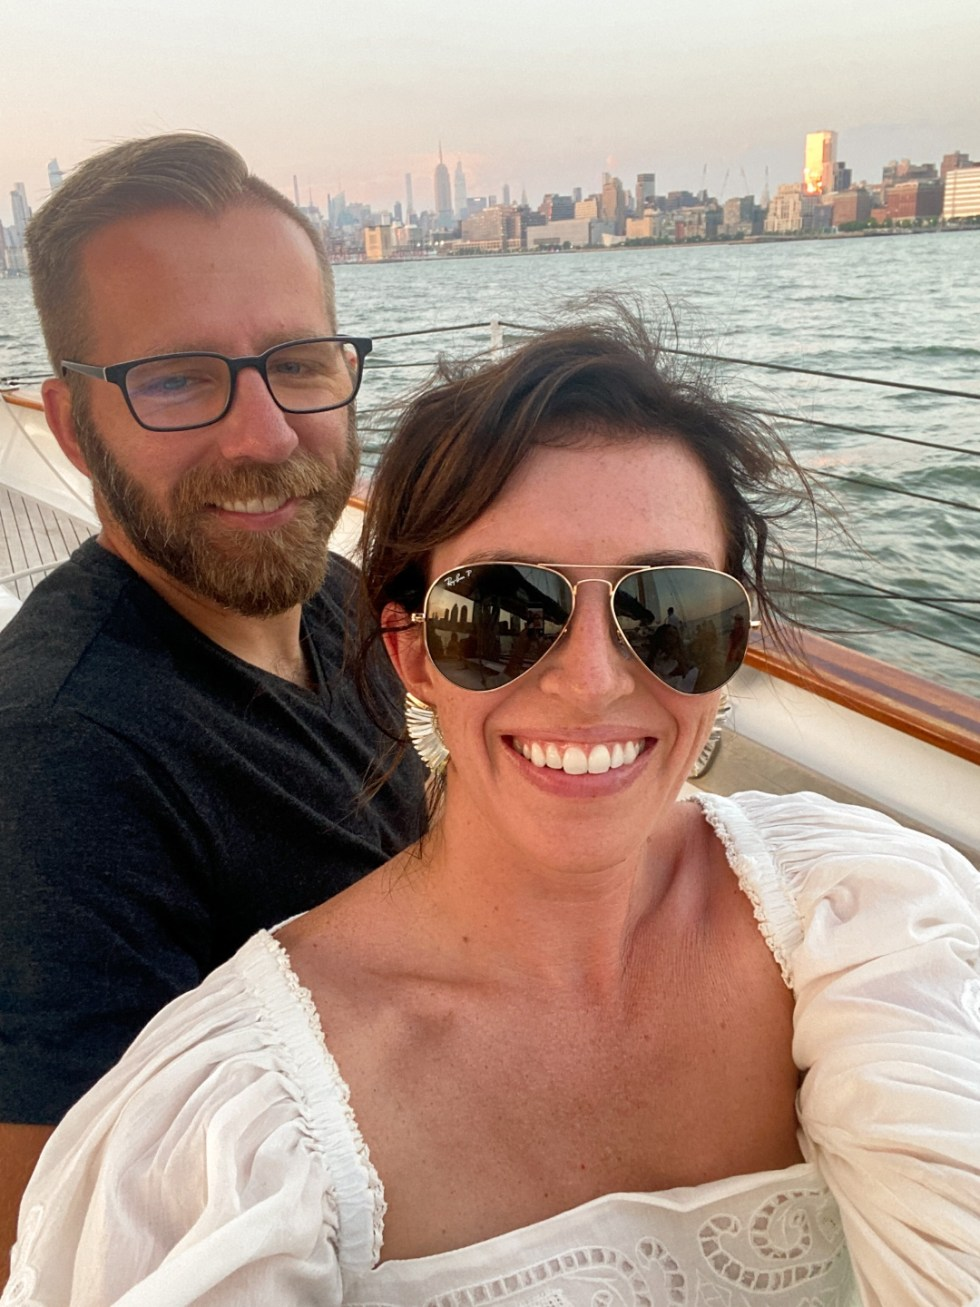 NYC Summer Weekend: Things to Do in NYC in the Summer - I'm Fixin' To - @imfixintoblog   NYC Summer Weekend by popular NC travel blog, I'm Fixin' To: image of a man and woman taking a selfie together on a boat with the NYC skyline behind them.